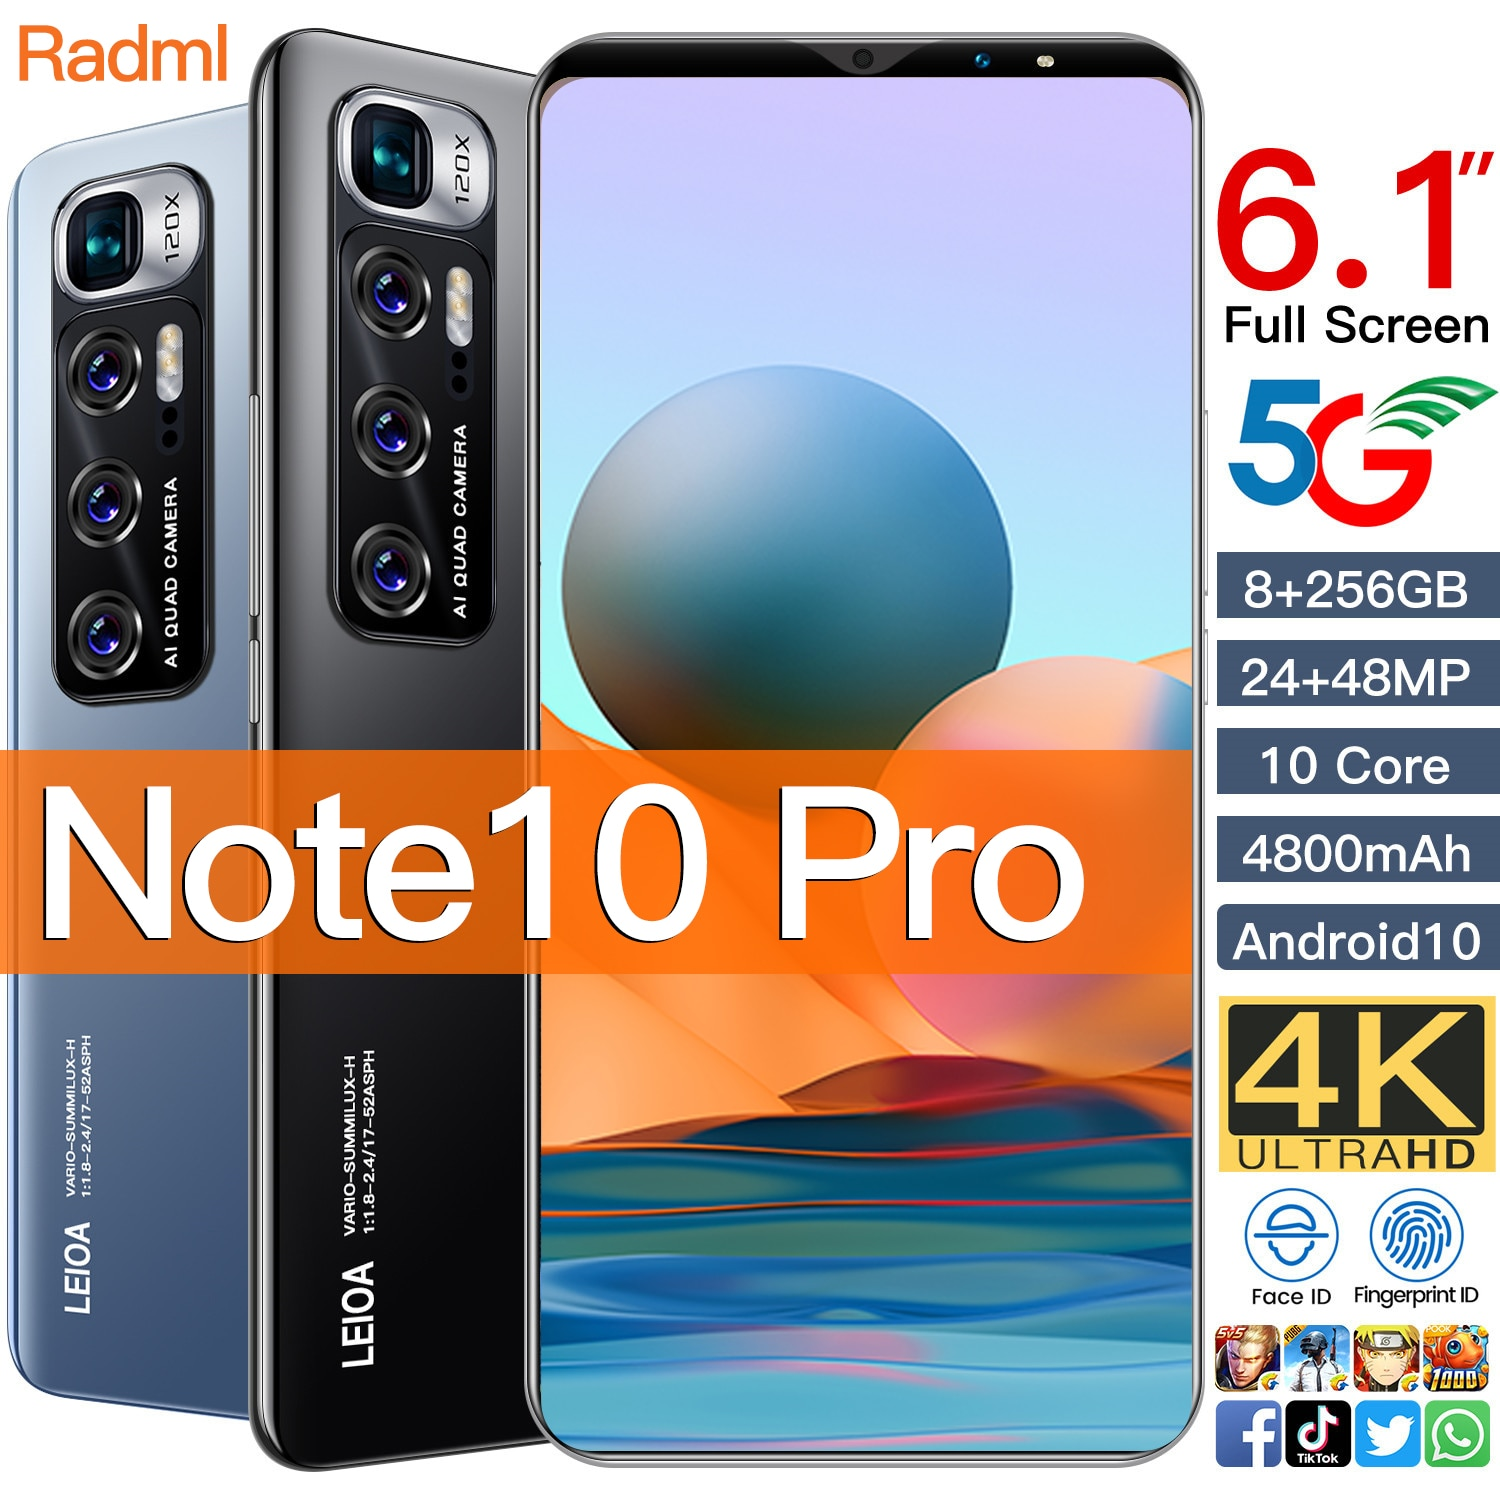 """Radml Note 10 Pro Smart phone 6GB 128GB Smartphone 6.1"""" MTK 6763 10 core 4g network Mobile Phones Android 10.0 4800mAh CellPhone"""